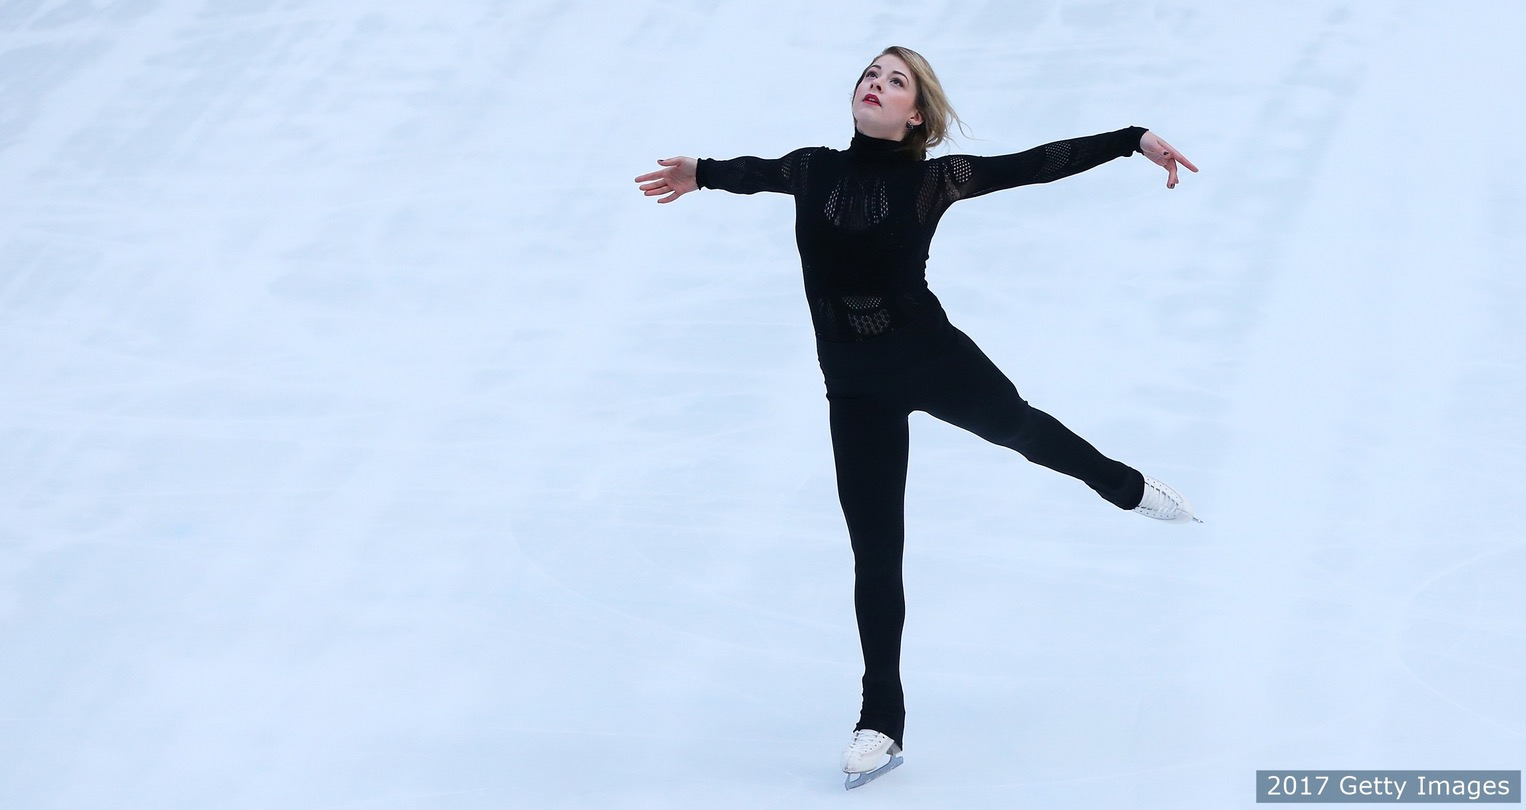 Gracie Gold skates at NBC's TODAY Show on Feb. 8, 2017 in New York City. (Courtesy Getty Images)